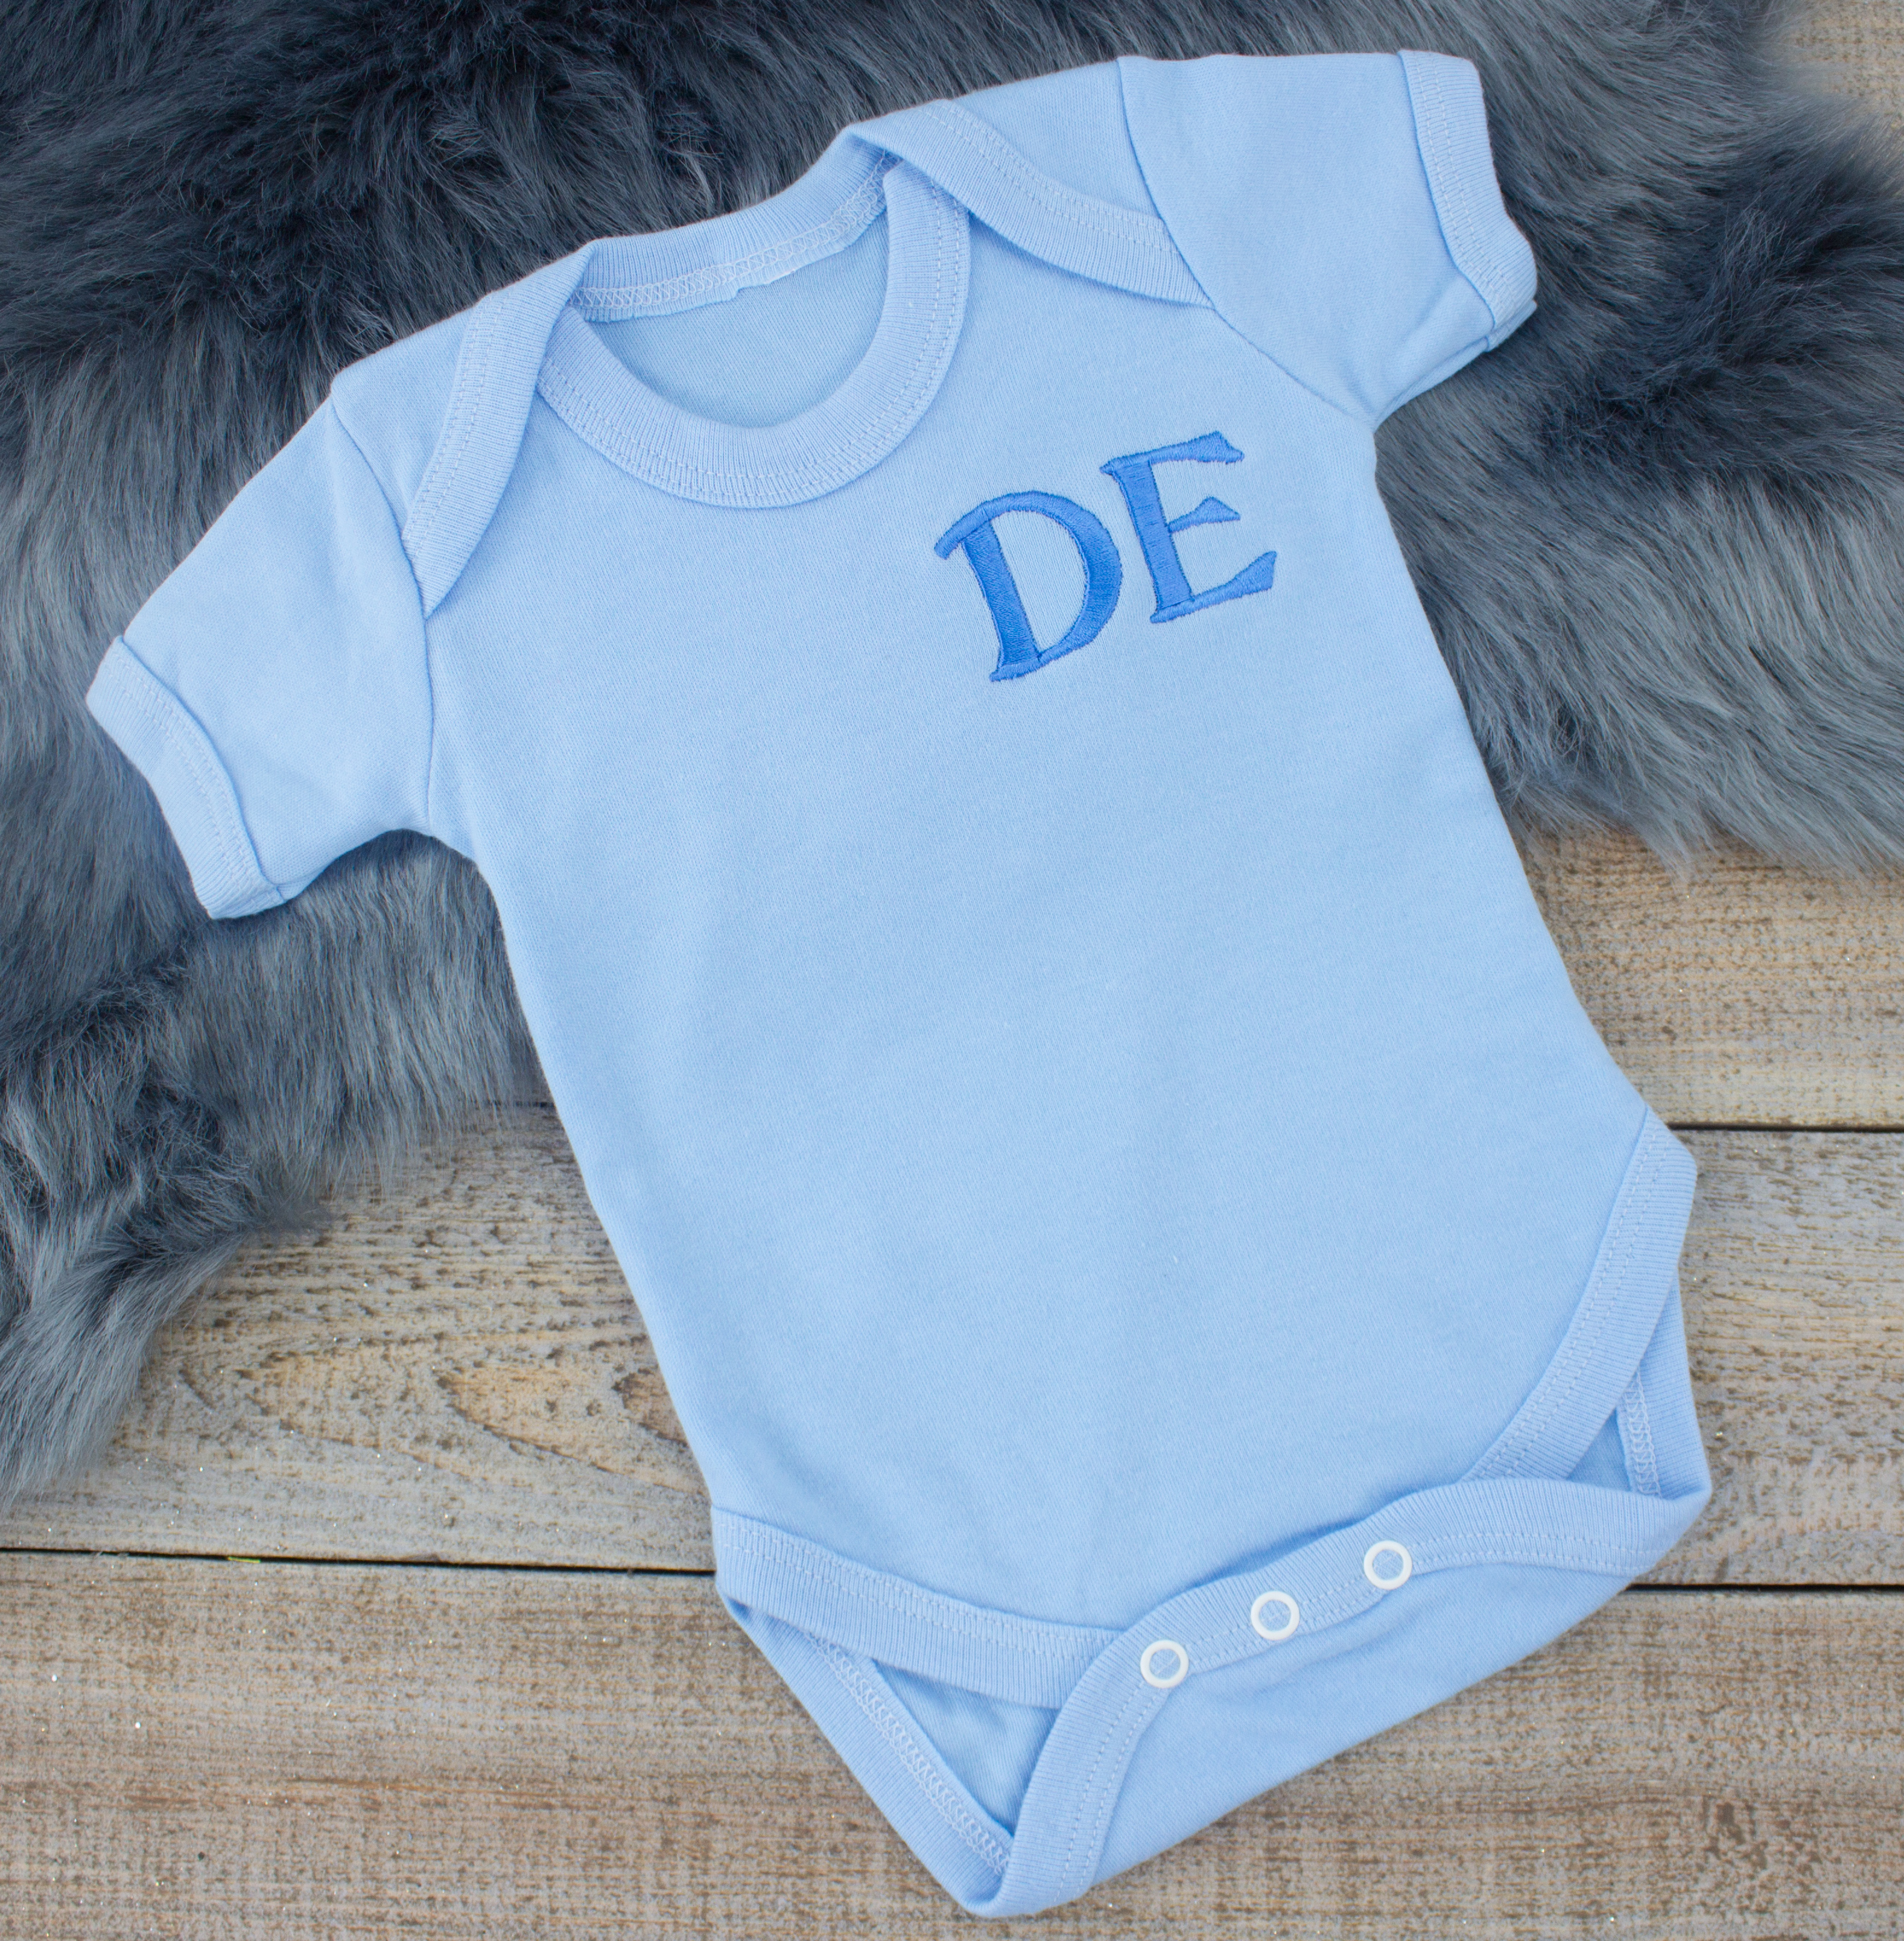 9829fa7f8 Monogrammed Blue Baby Bodysuit   Heavensent Baby Gifts